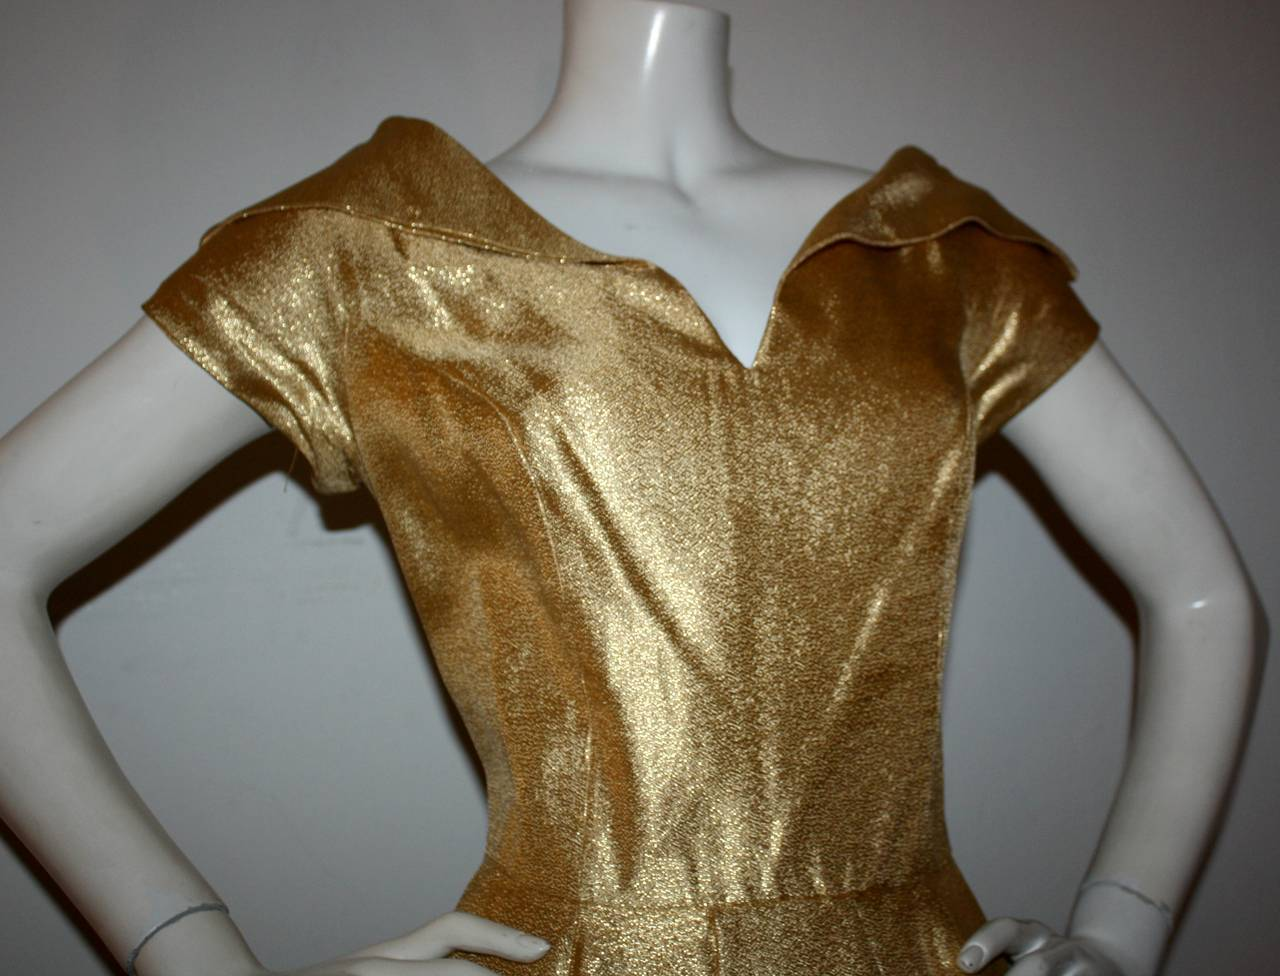 Brown Wonderful 1950s Gold Metallic Vintage Cocktail Dress w/ Full Skirt For Sale